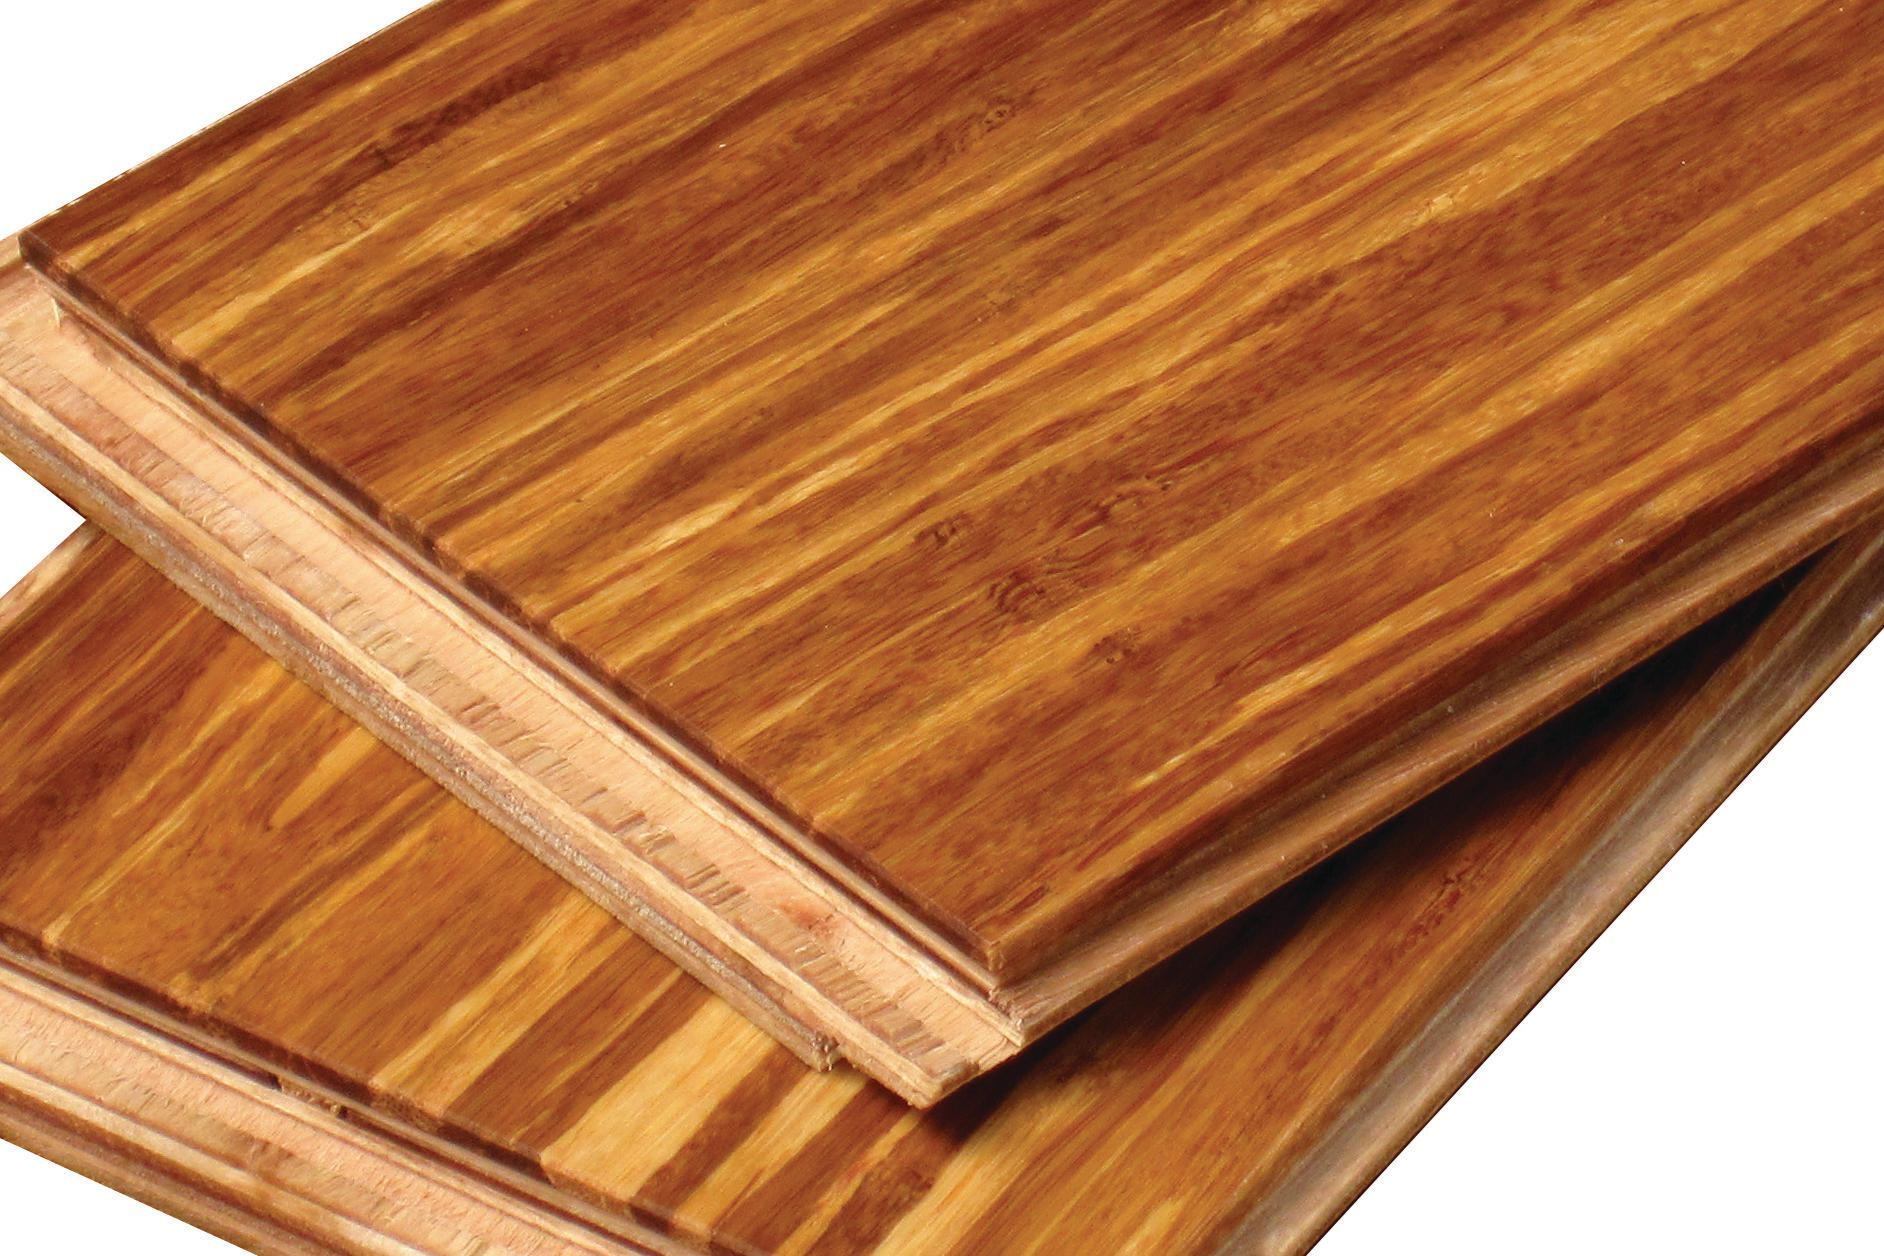 Cali Bamboo Caliclick Flooring Builder Magazine Products Finishes And Surfaces Engineering